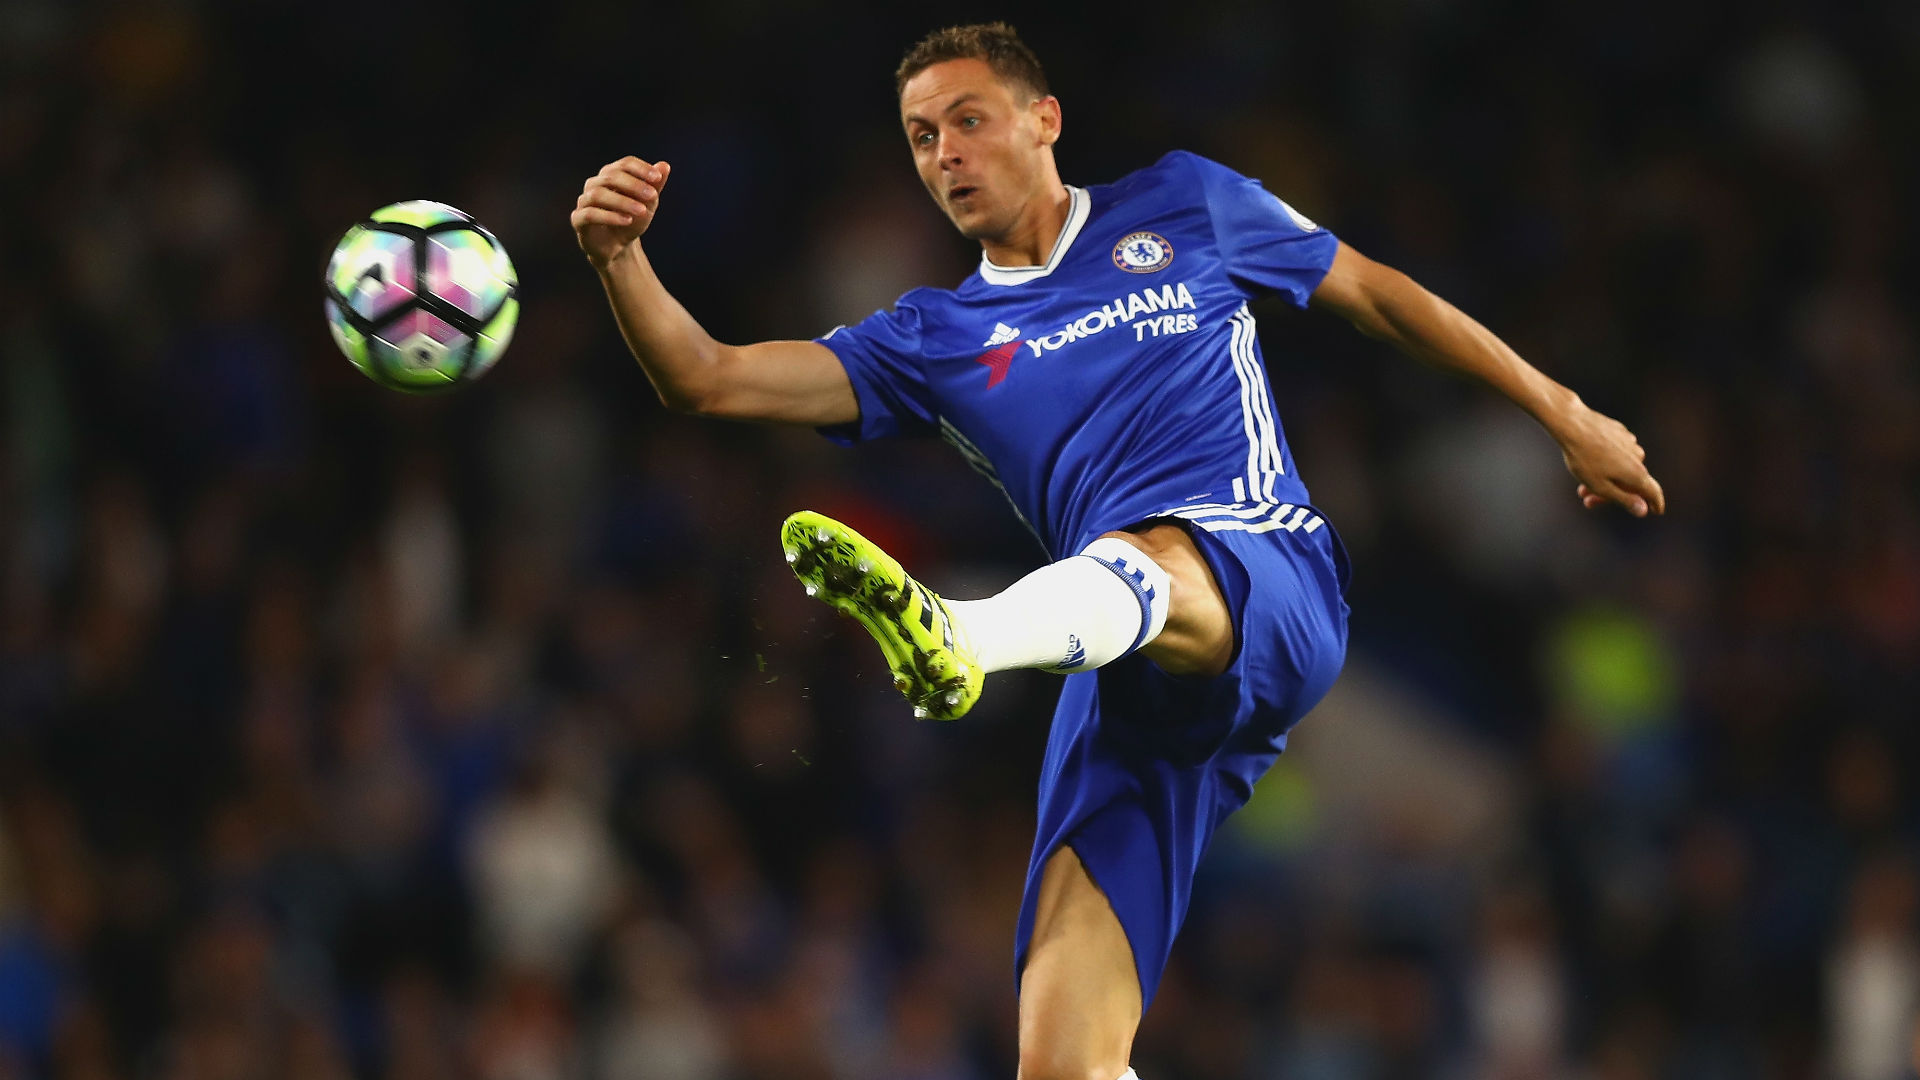 Transfer news Nemanja Matic due for medical at Manchester United